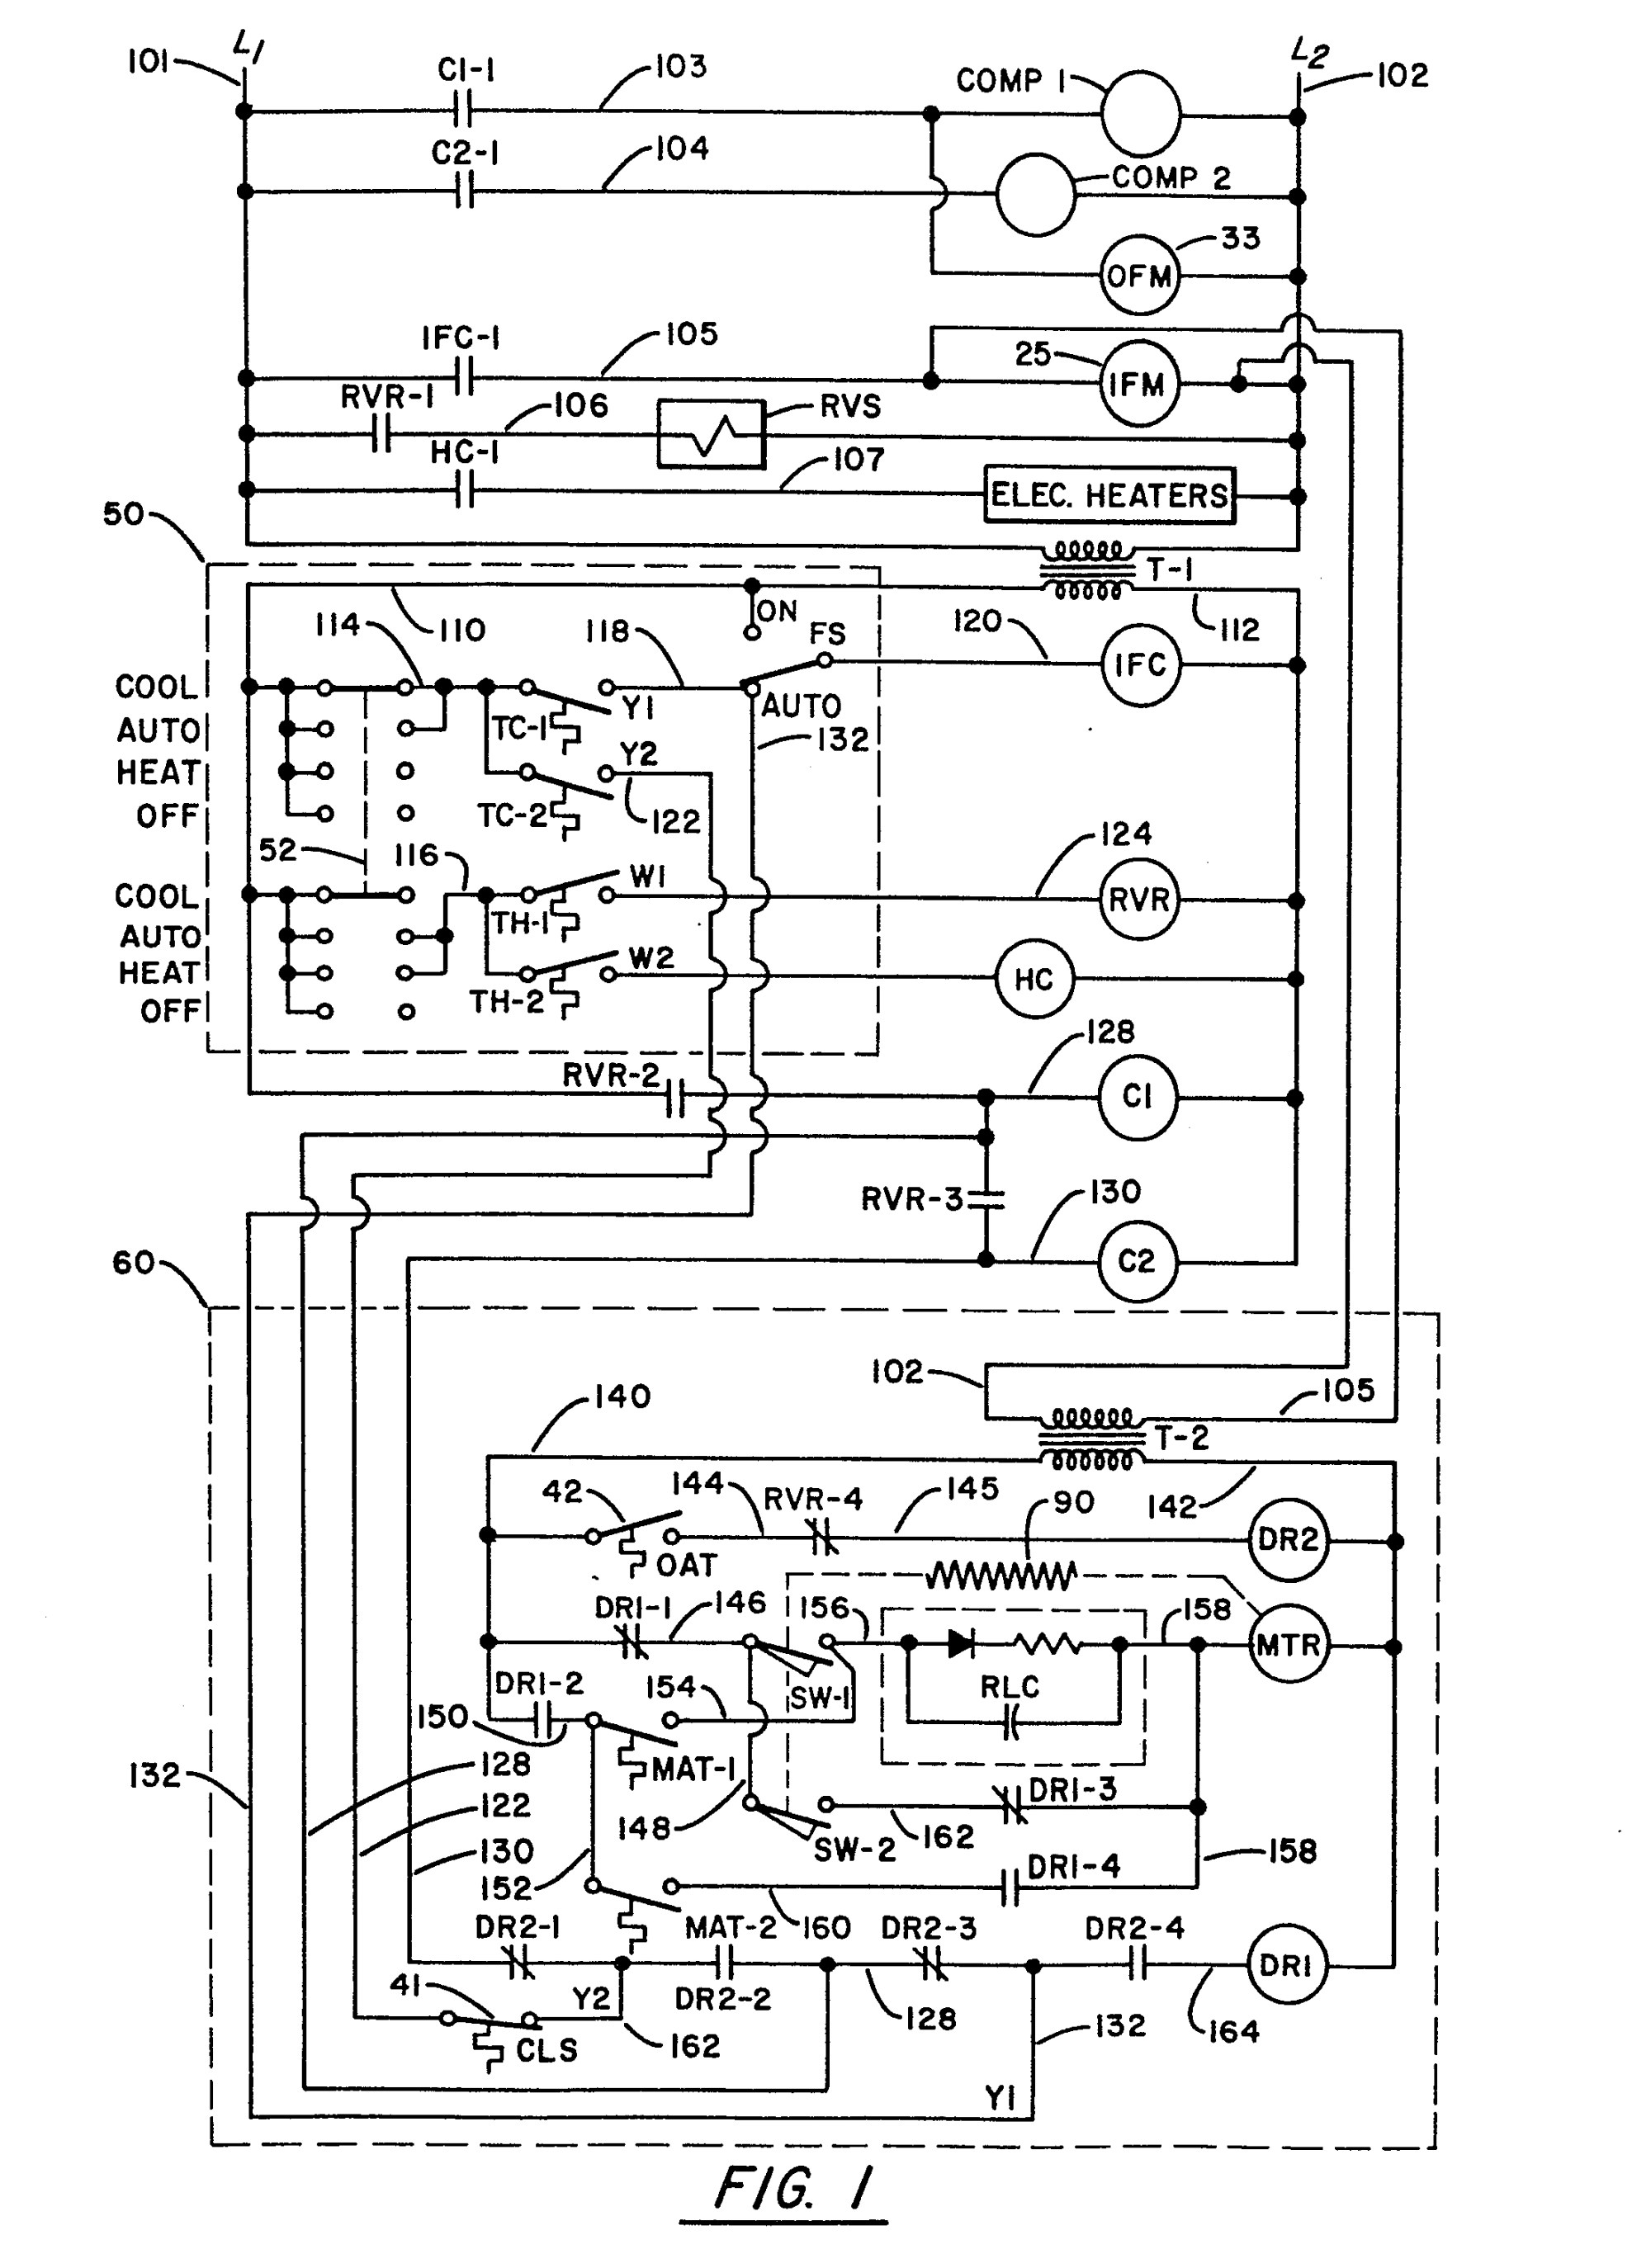 hight resolution of aaon rooftop units wiring diagram wiring diagram for trane air conditioner inspirational lovely free easy